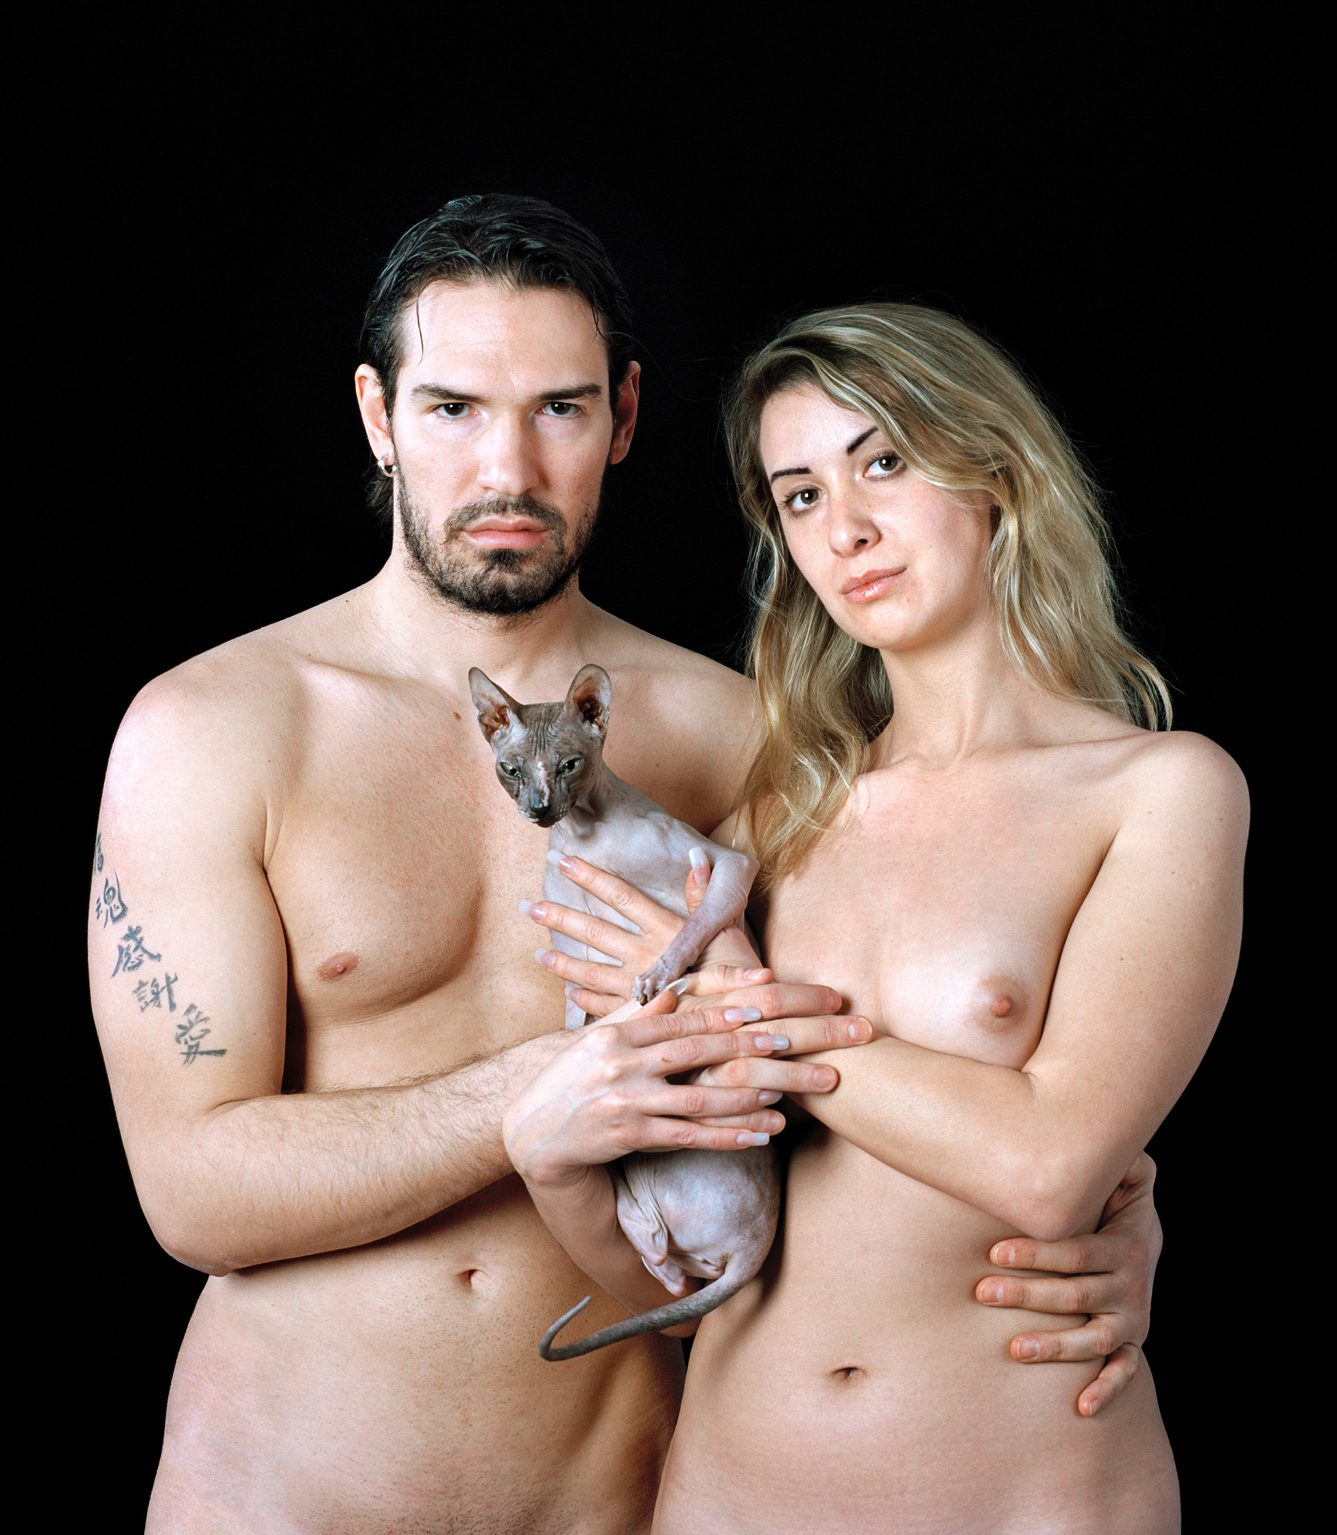 Untitled, For a Definition of The Nude Series (Couple w/ Cat)